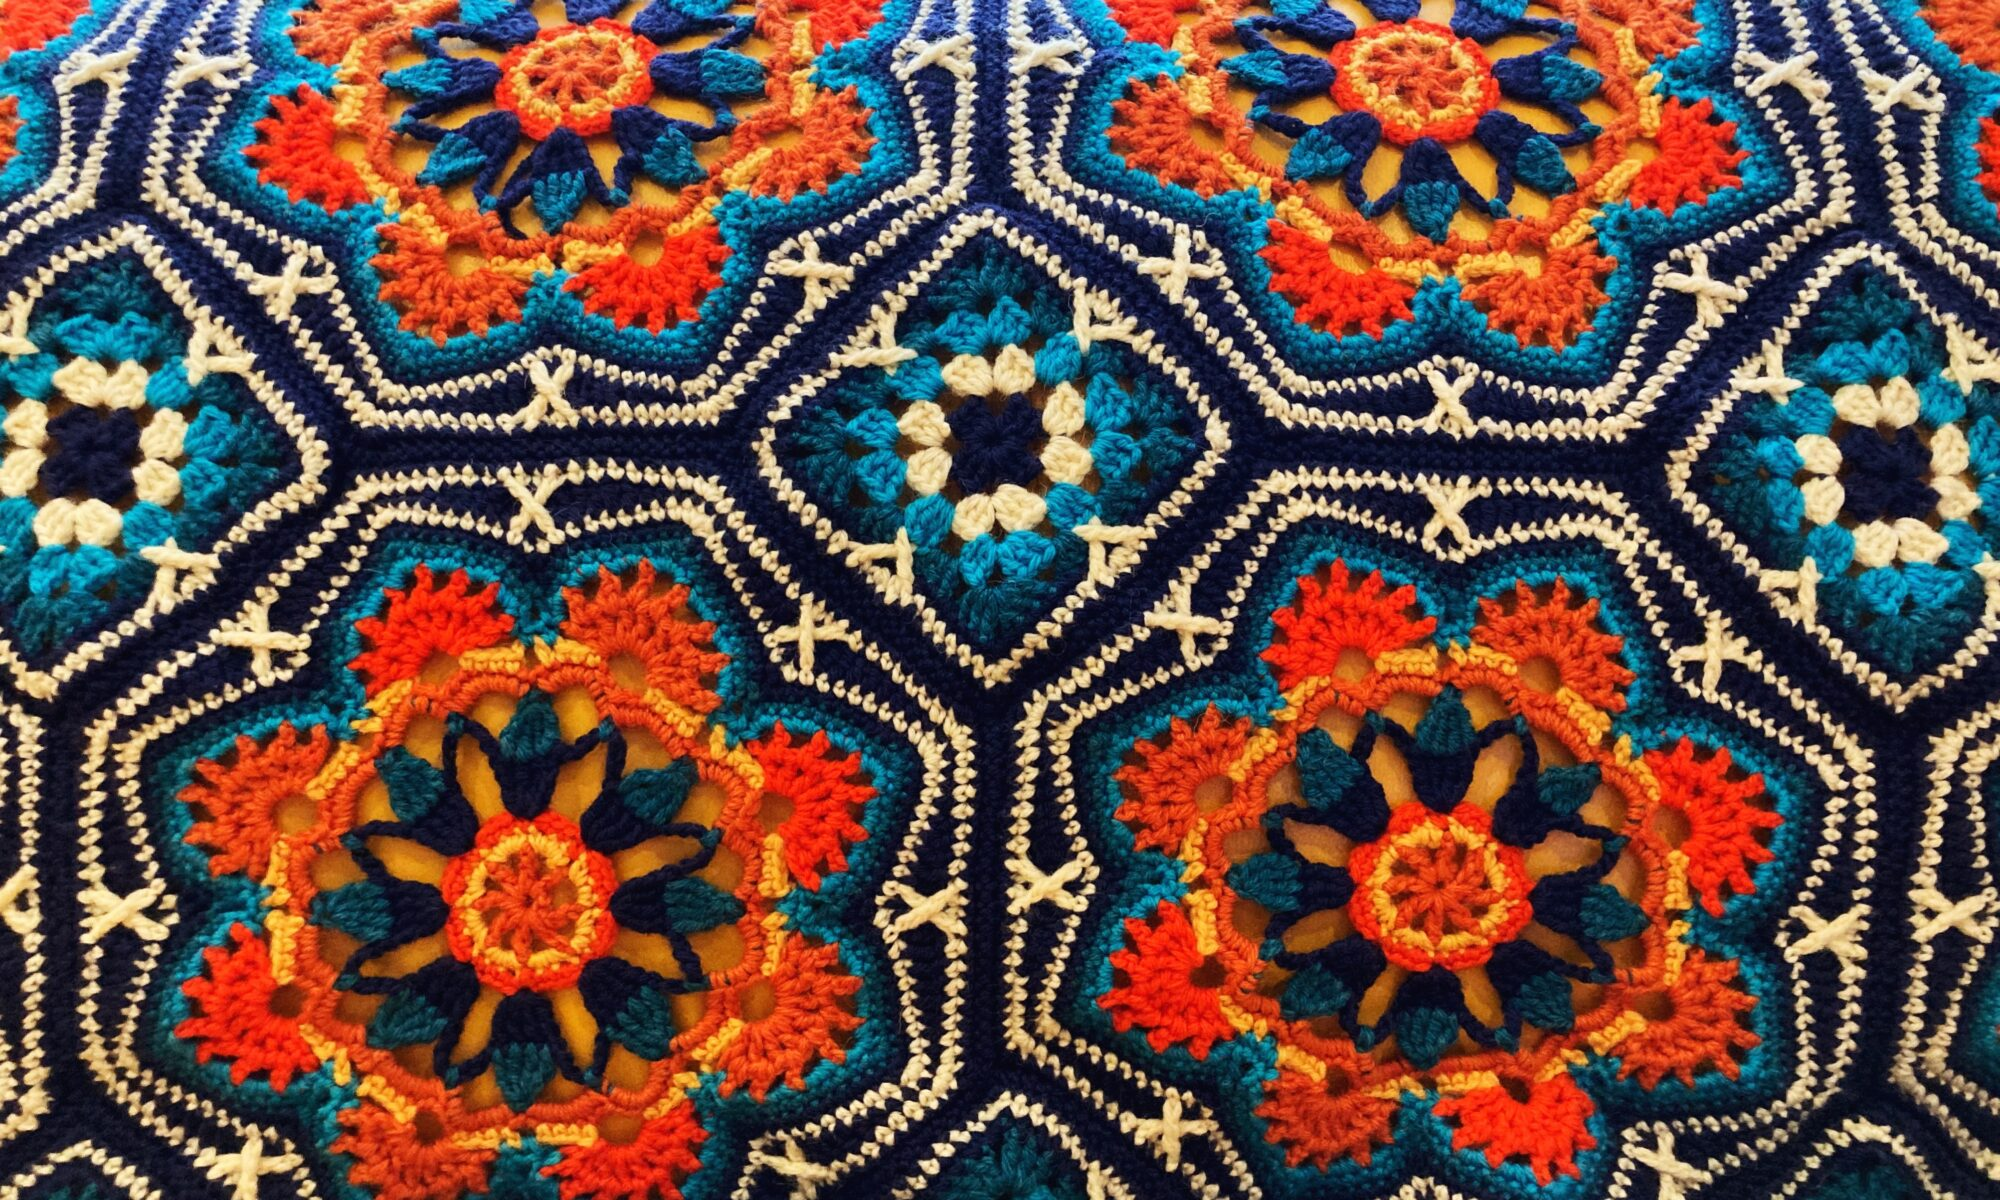 Detail on crochet tile